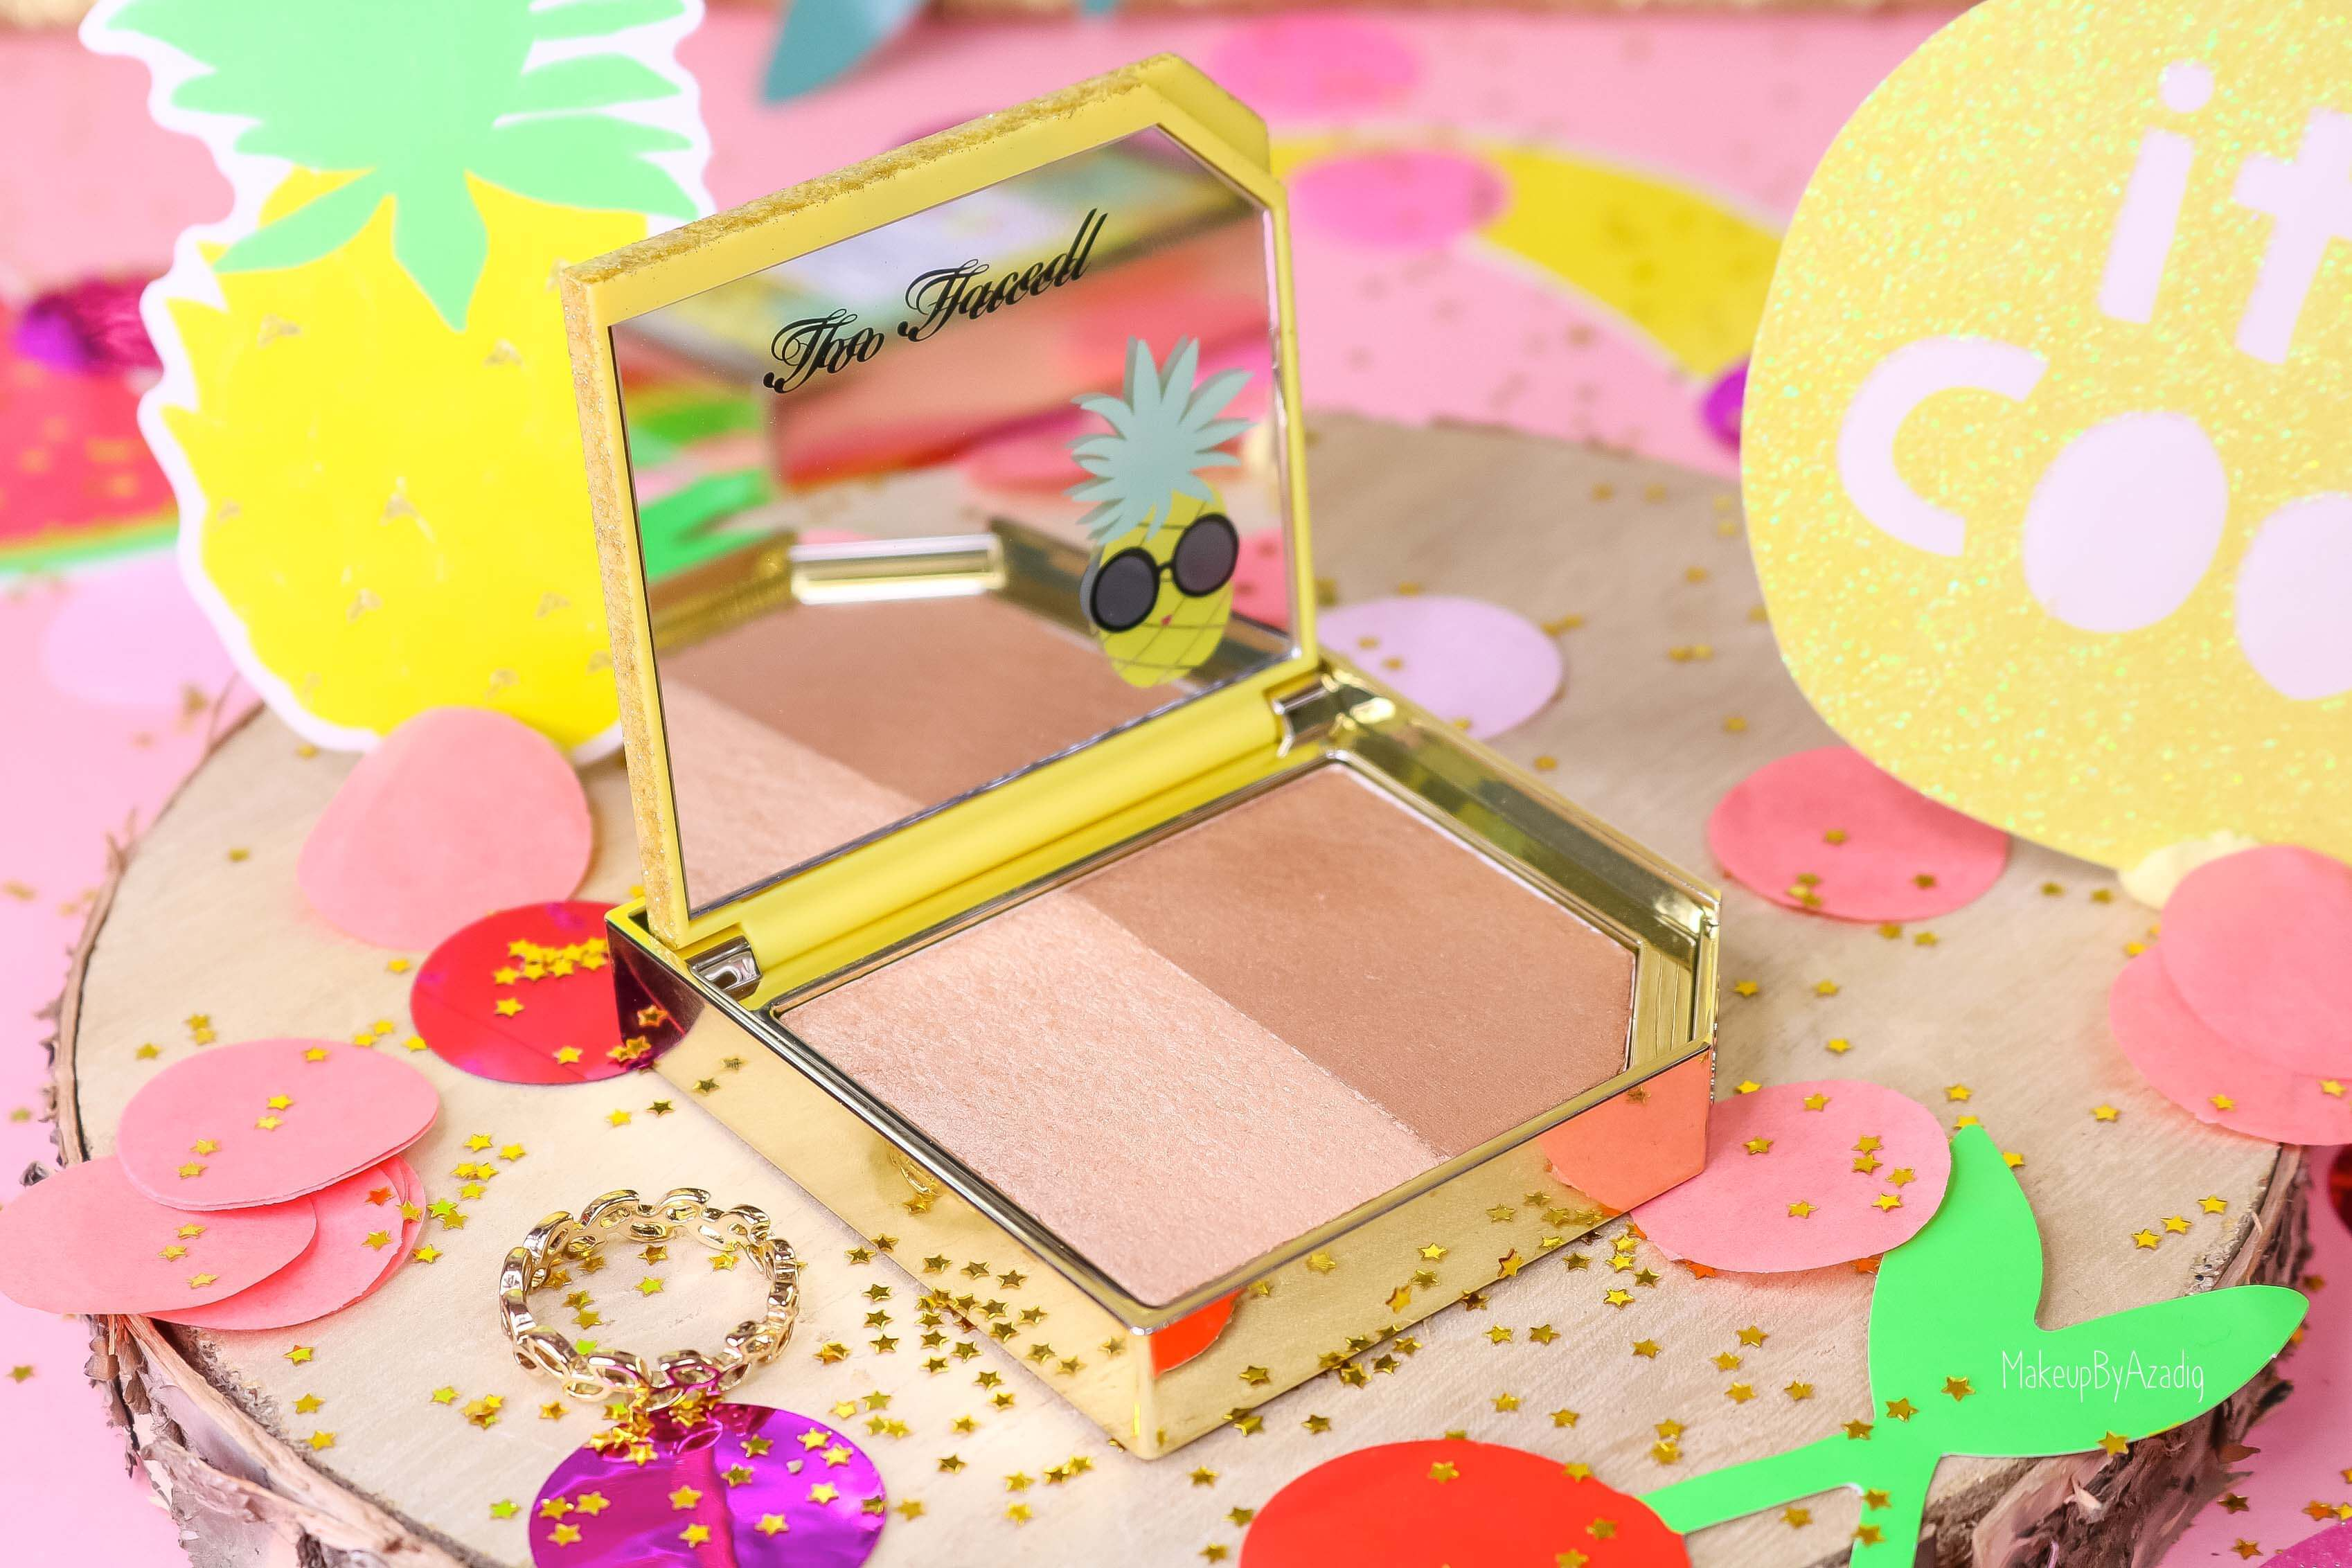 revue-collection-tutti-frutti-too-faced-bronzeur-highlighter-pineapple-paradise-sun-sephora-france-makeupbyazadig-swatch-avis-prix-ananas-teinte